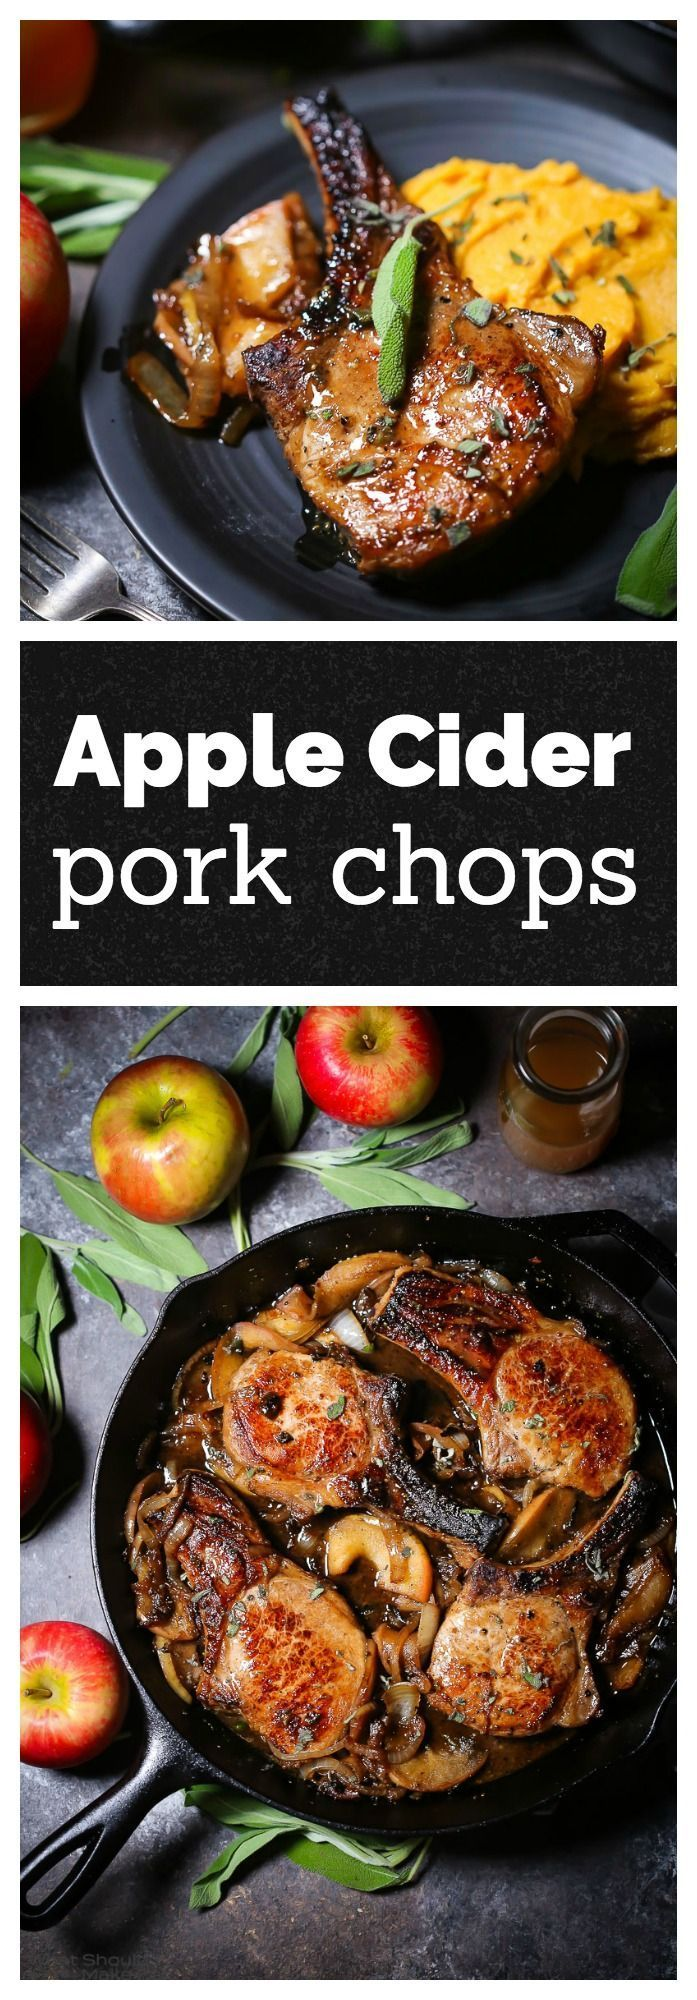 Tender pork chops are quickly brined before being seared and cooked with apples and onions in a flavorful cider sauce.